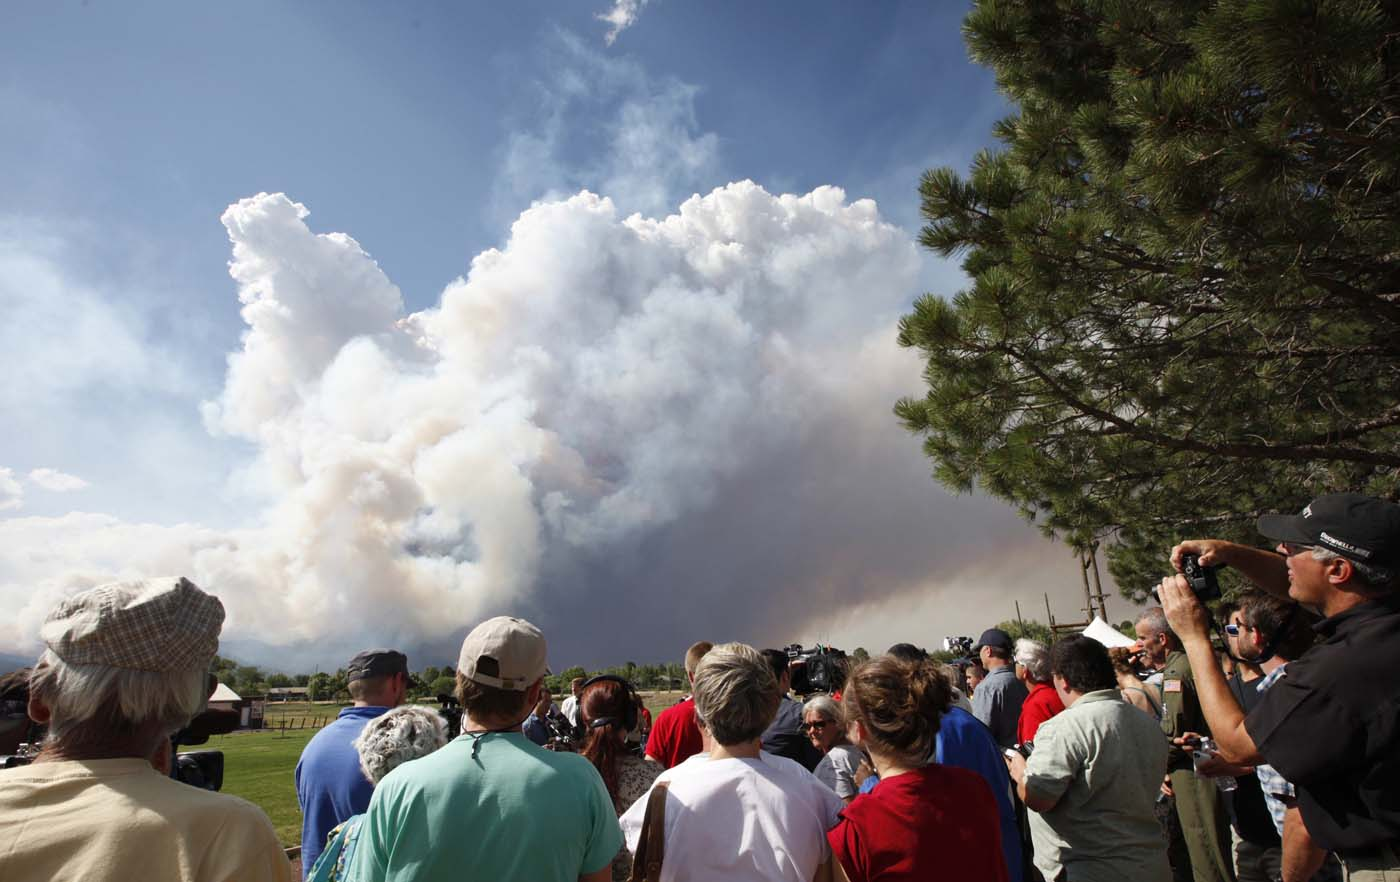 JUNE 26: Evacuated residents and others listen to a briefing as smoke rises from the Waldo Canyon fire west of Colorado Springs, Colorado June 26, 2012. (Rick Wilking/Reuters)